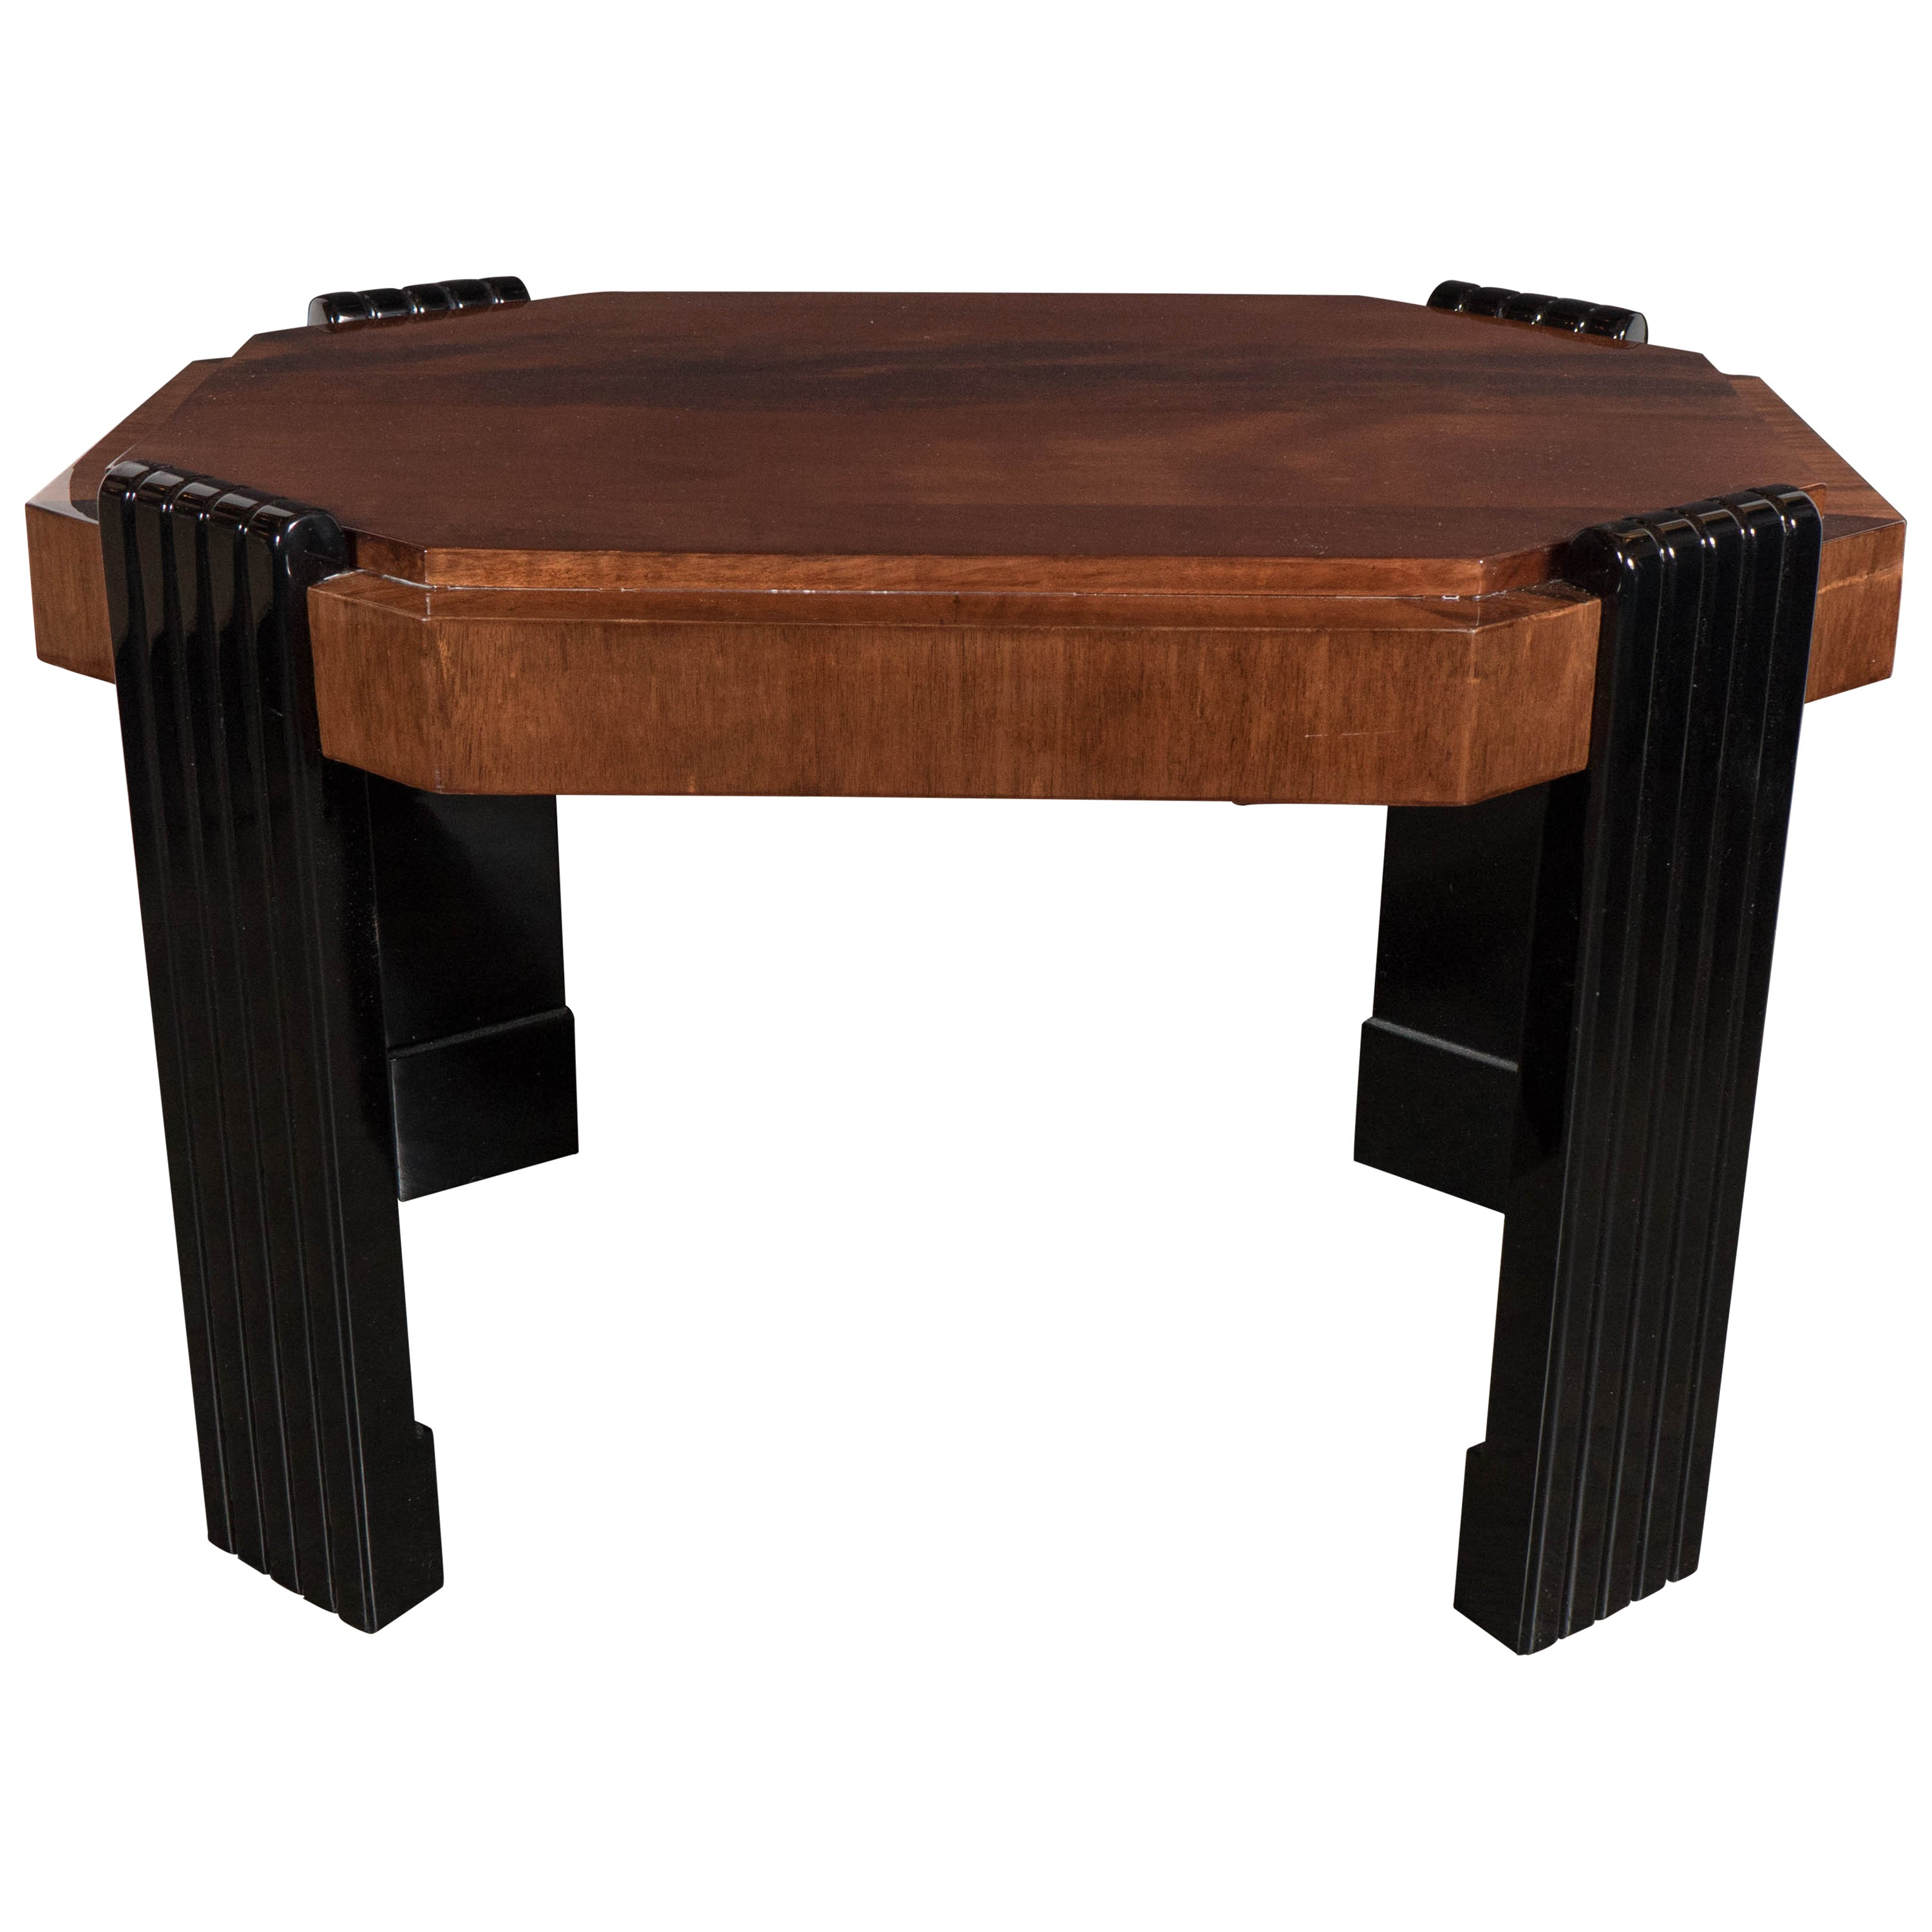 Art Deco Streamlined Octagonal Occasional Table in Bookmatched Burled Walnut